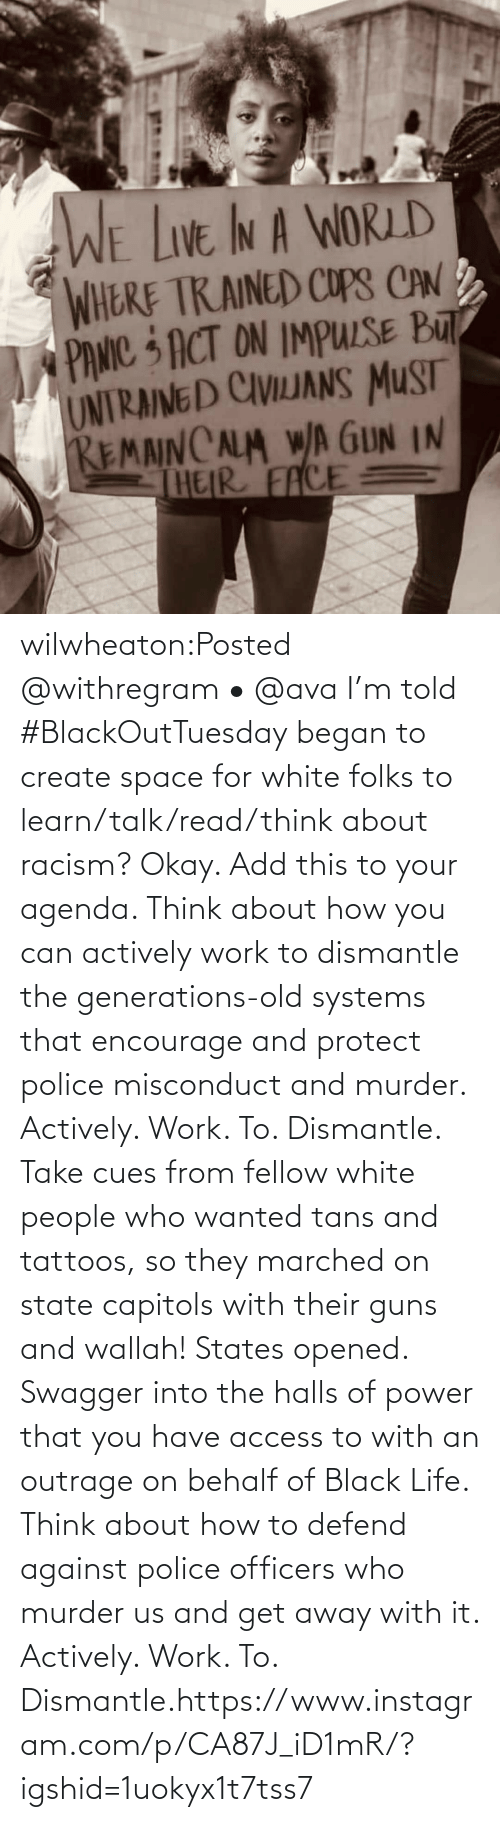 for: wilwheaton:Posted @withregram • @ava I'm told #BlackOutTuesday began to create space for white folks to learn/talk/read/think about racism? Okay. Add this to your agenda. Think about how you can actively work to dismantle the generations-old systems that encourage and protect police misconduct and murder. Actively. Work. To. Dismantle. Take cues from fellow white people who wanted tans and tattoos, so they marched on state capitols with their guns and wallah! States opened. Swagger into the halls of power that you have access to with an outrage on behalf of Black Life. Think about how to defend against police officers who murder us and get away with it. Actively. Work. To. Dismantle.https://www.instagram.com/p/CA87J_iD1mR/?igshid=1uokyx1t7tss7